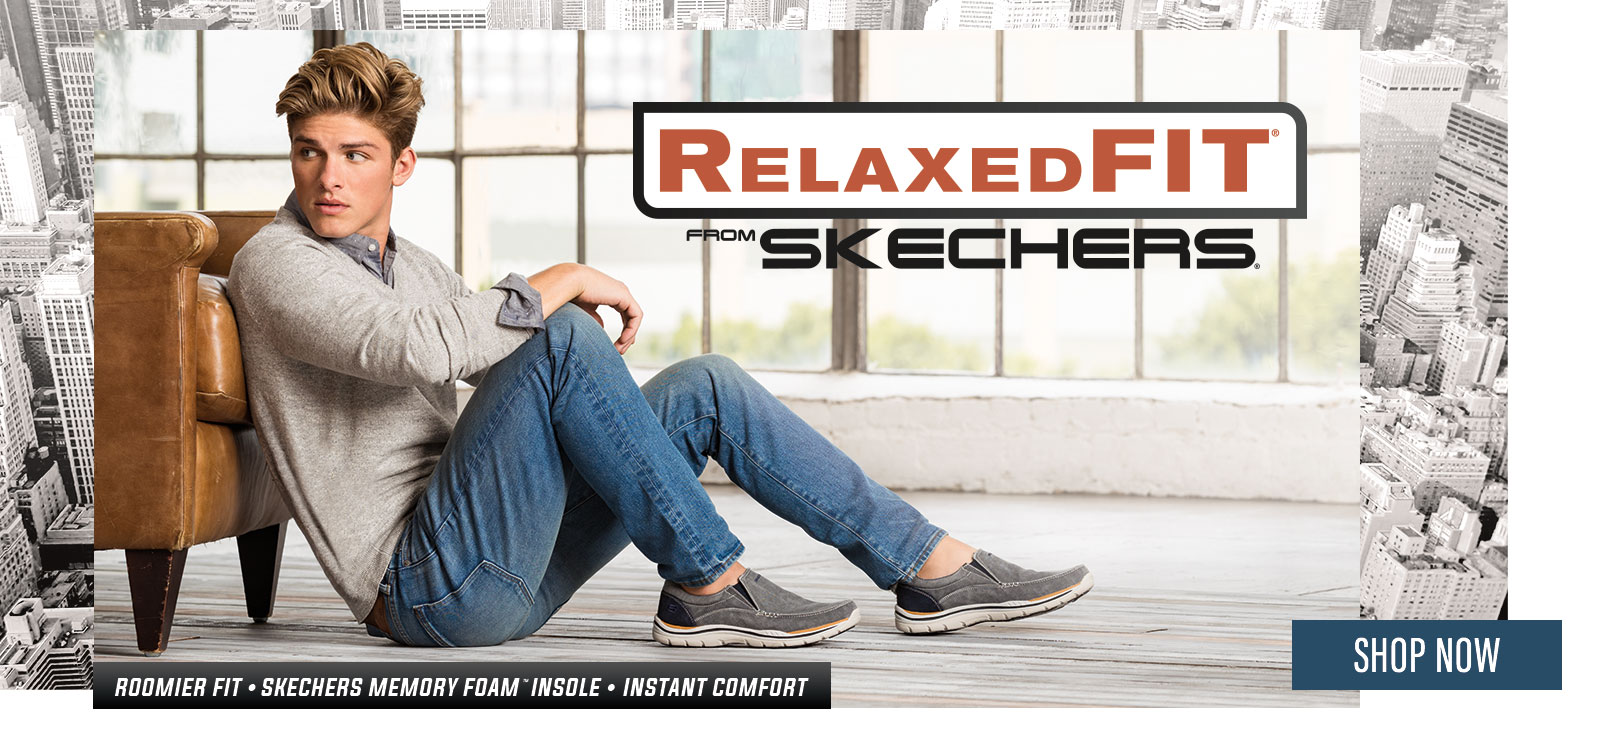 Shop for Men's Skechers Boots and Casual Shoes including Relaxed Fit with Memory Foam